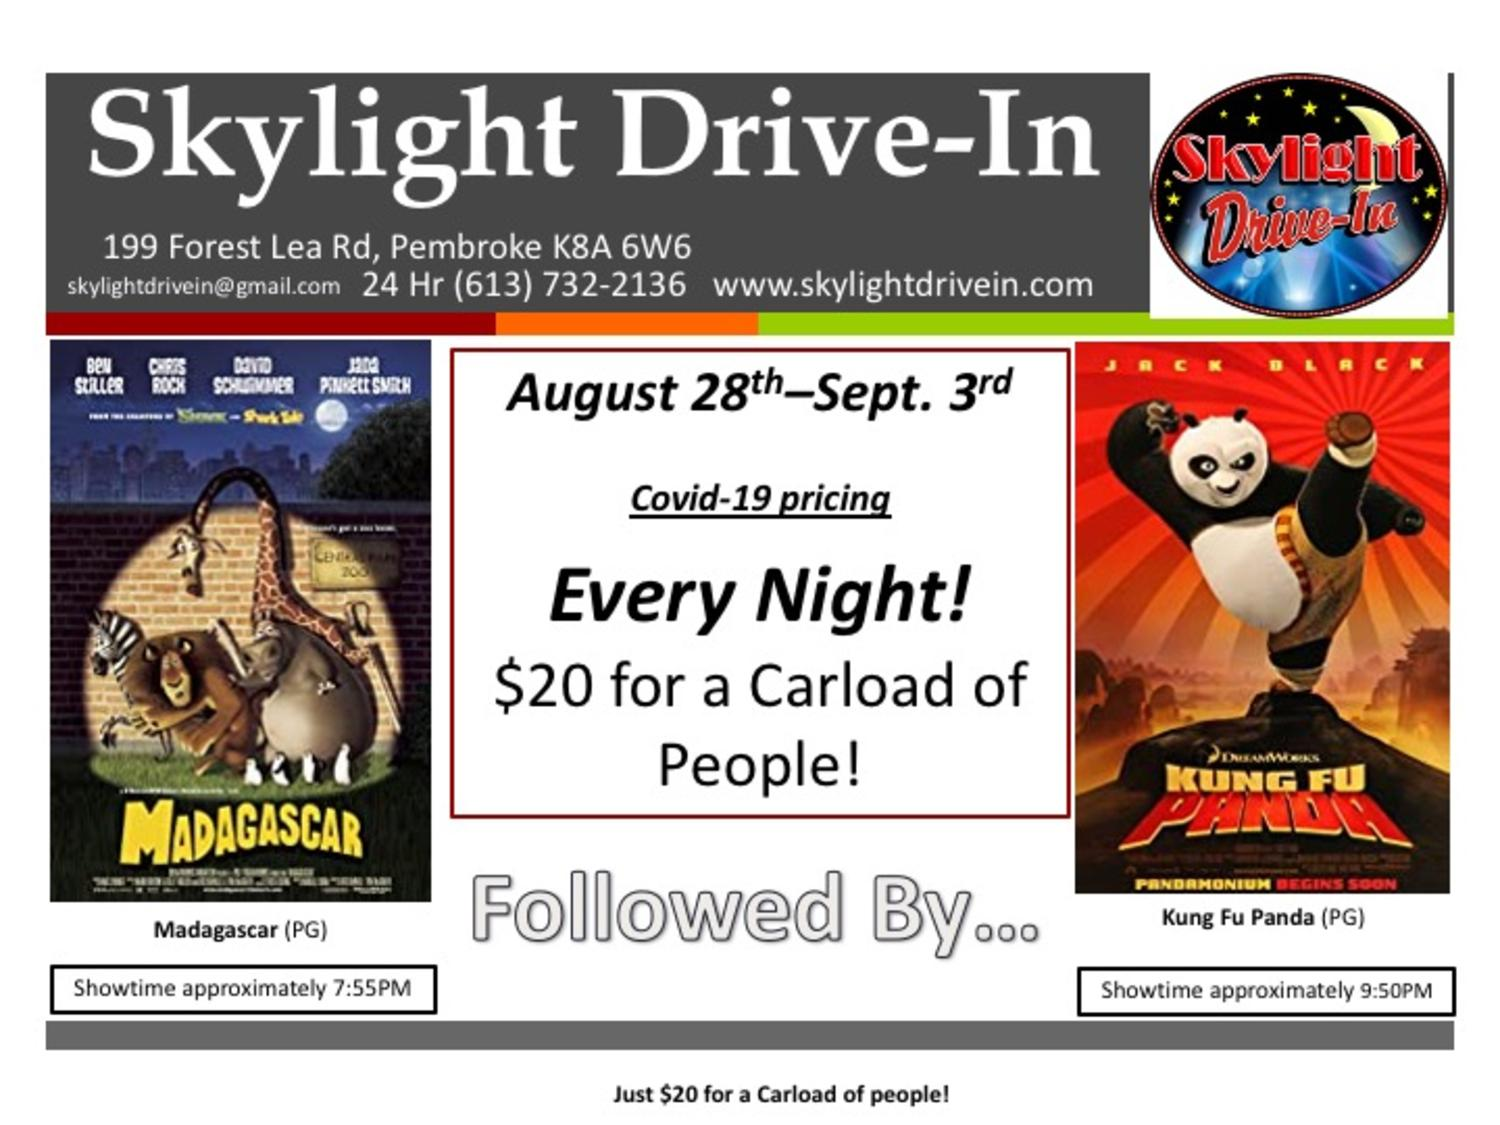 Skylight Drive-In - Madagascar followed by Kung Fu Panda